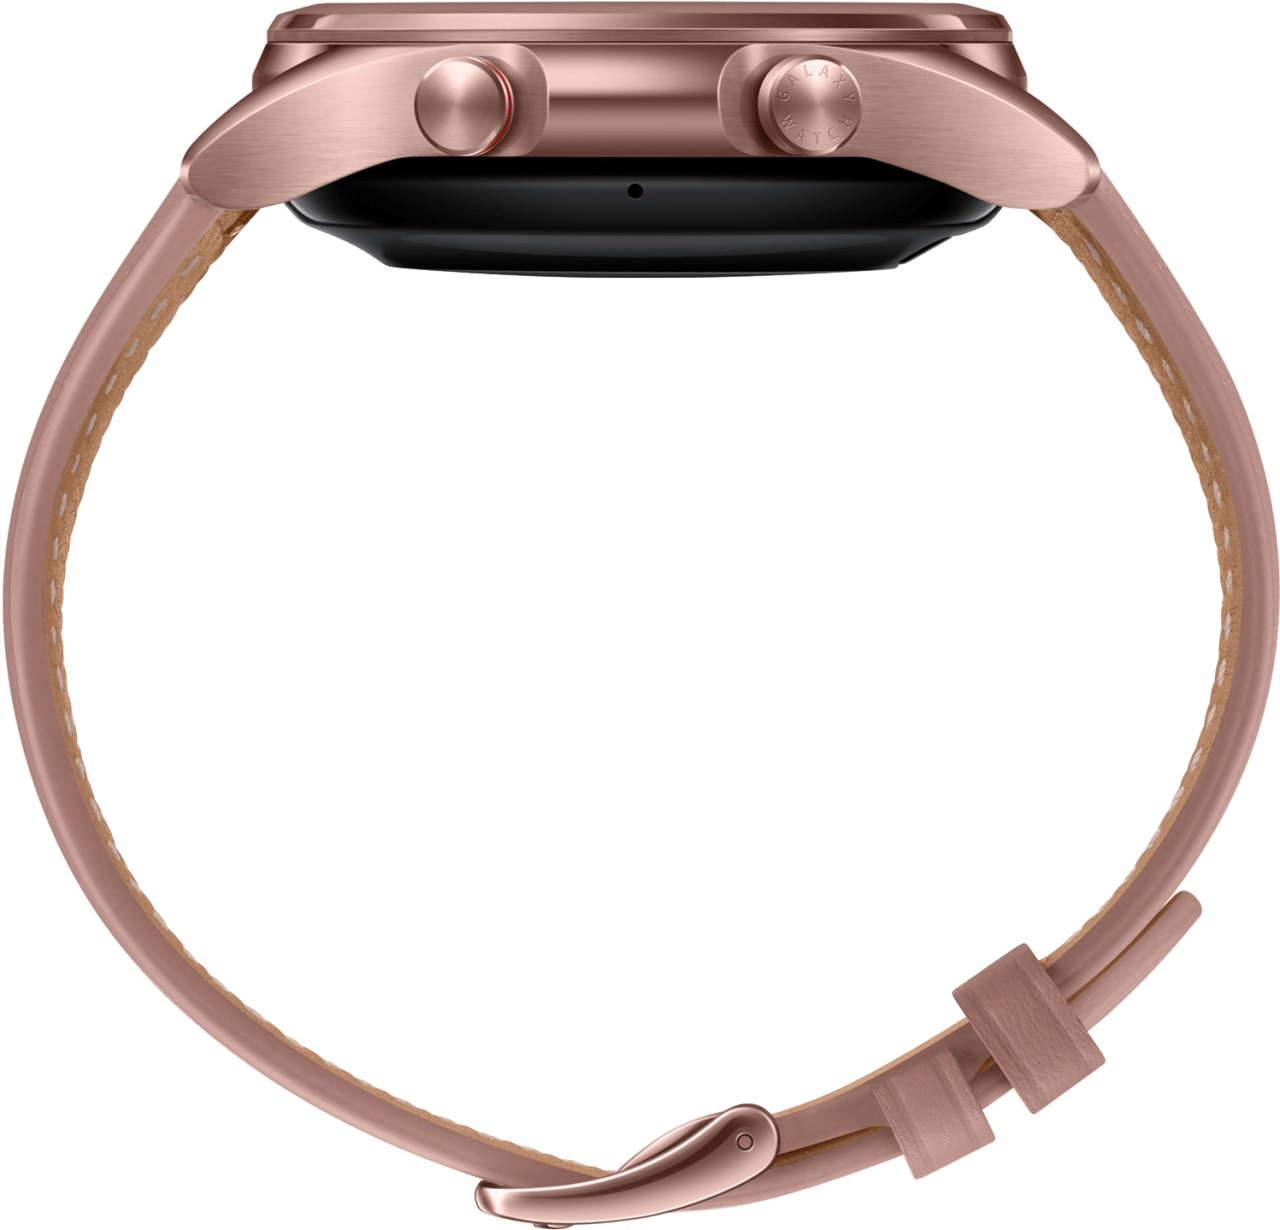 Mystic Bronze Samsung Galaxy Watch 3 (LTE), 41mm Stainless steel case, Real leather band.4